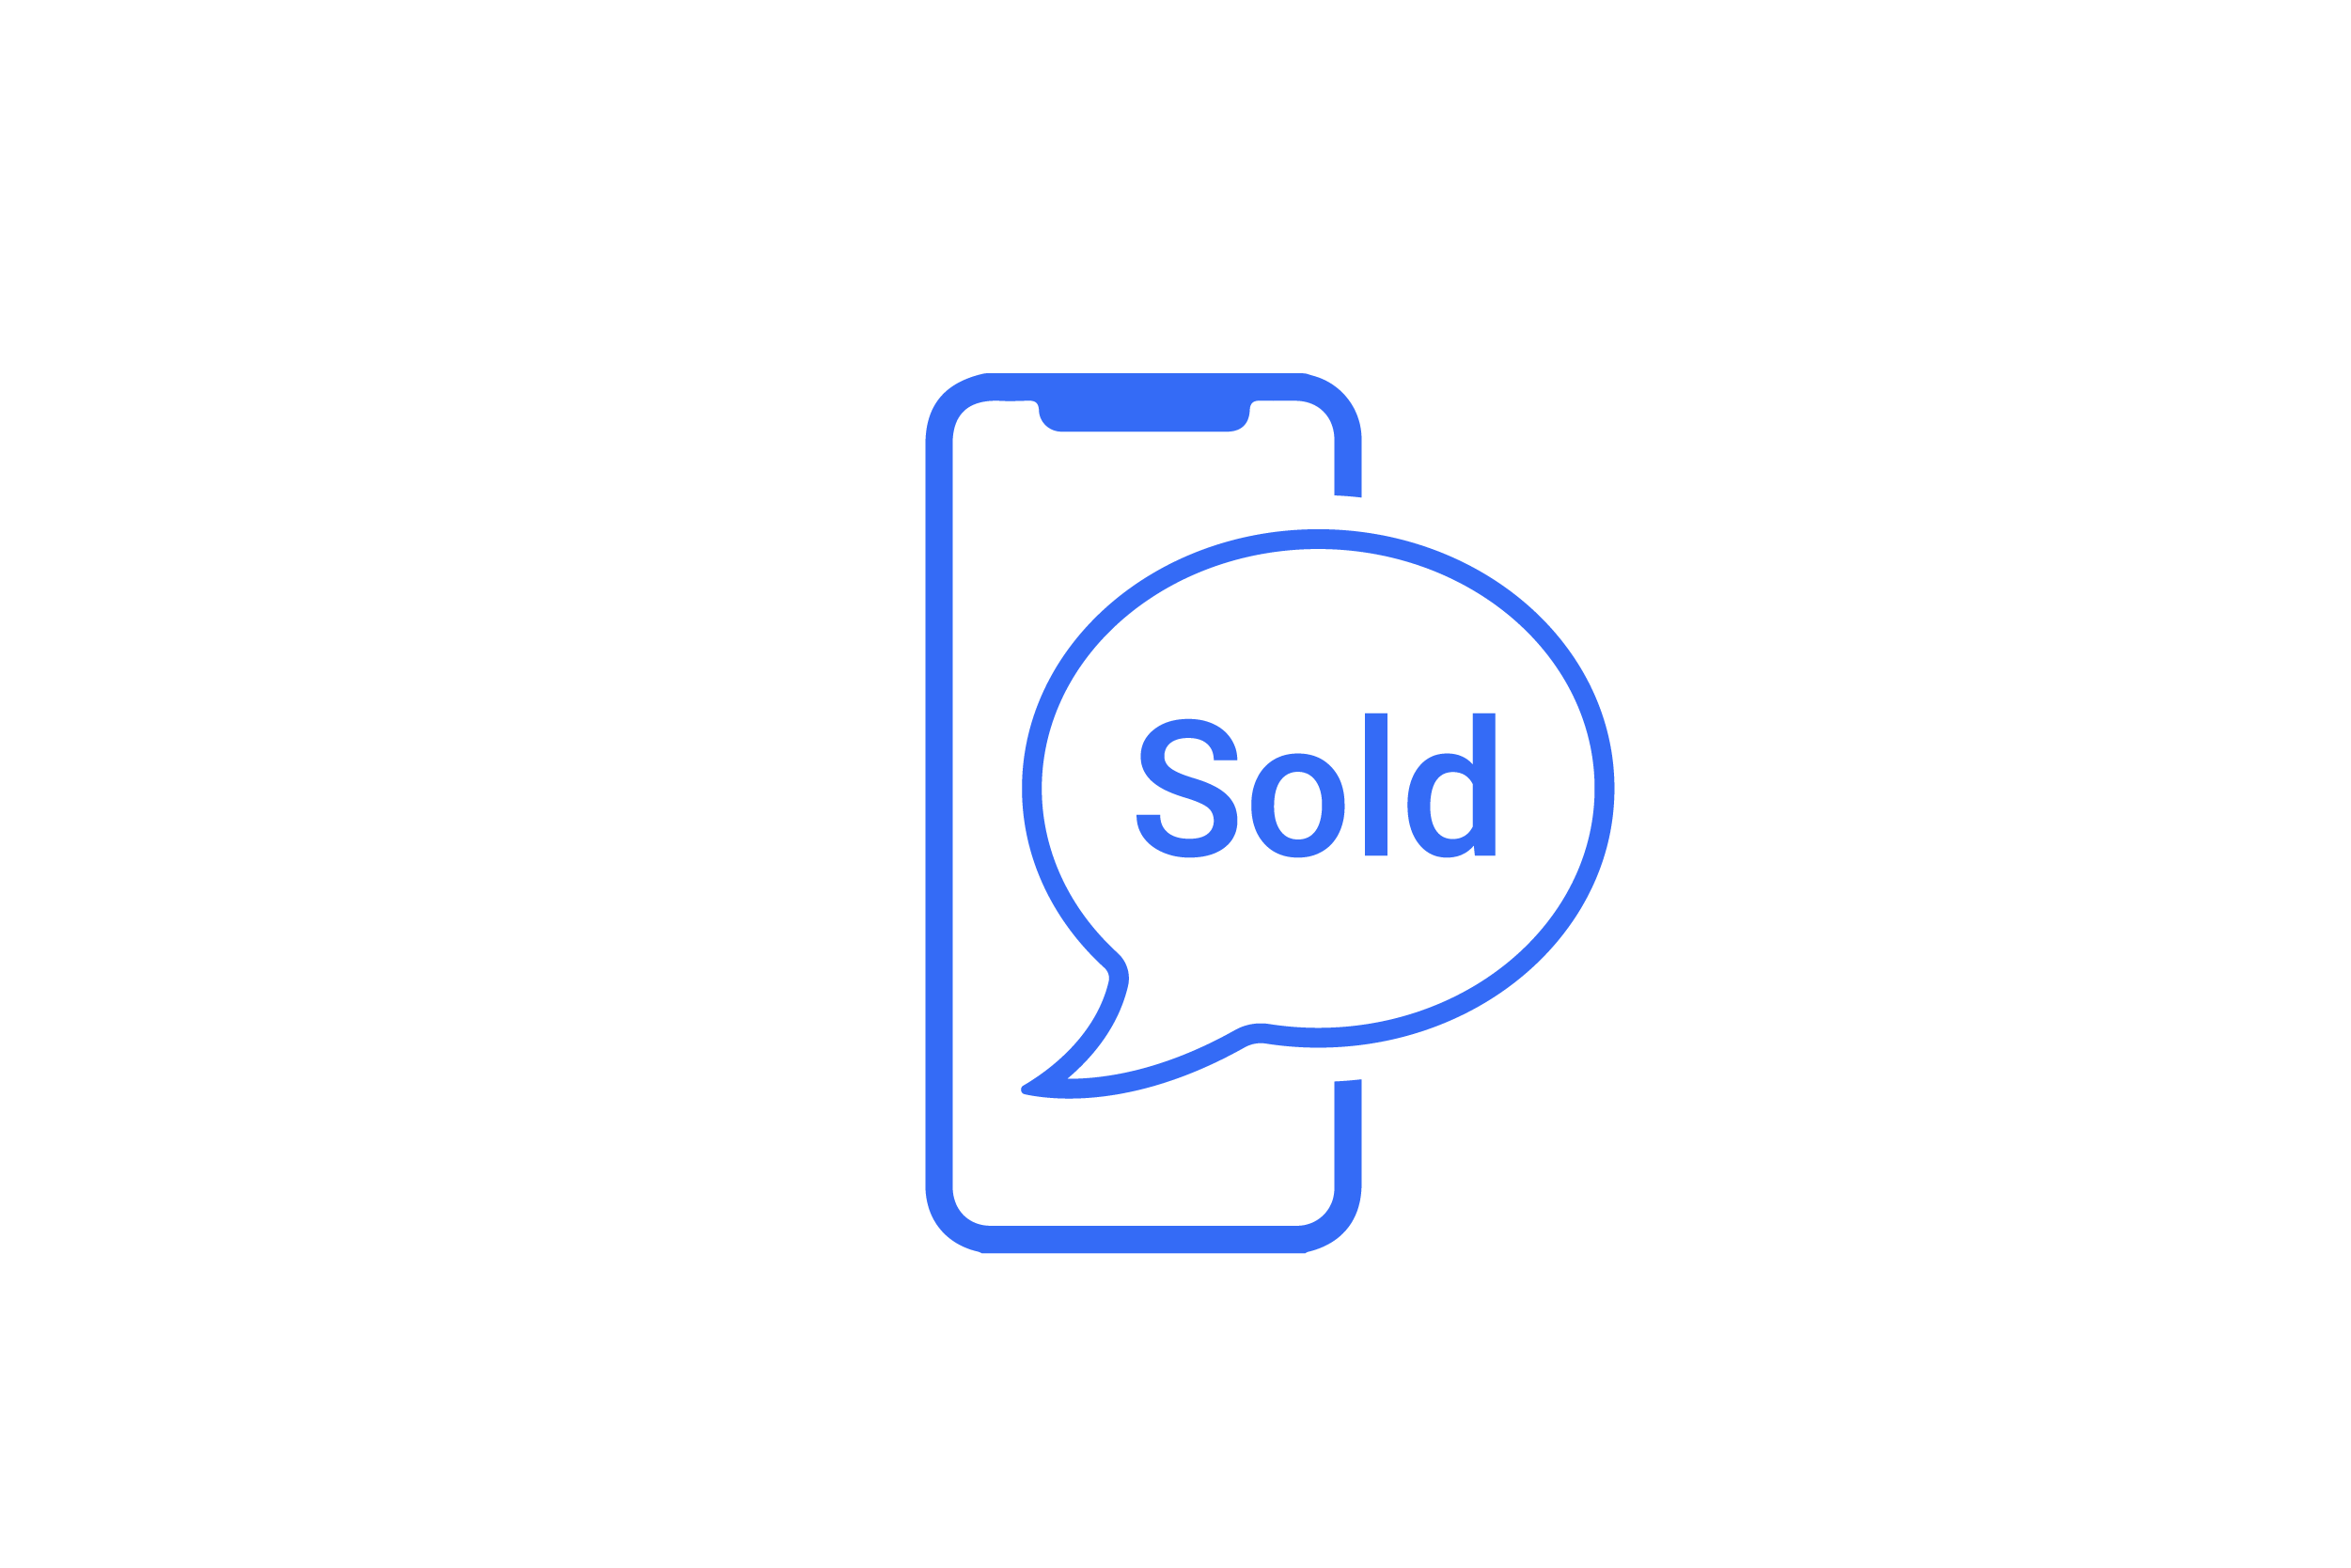 Sell. iPhone with 'Sold' speech bubble inside of it.